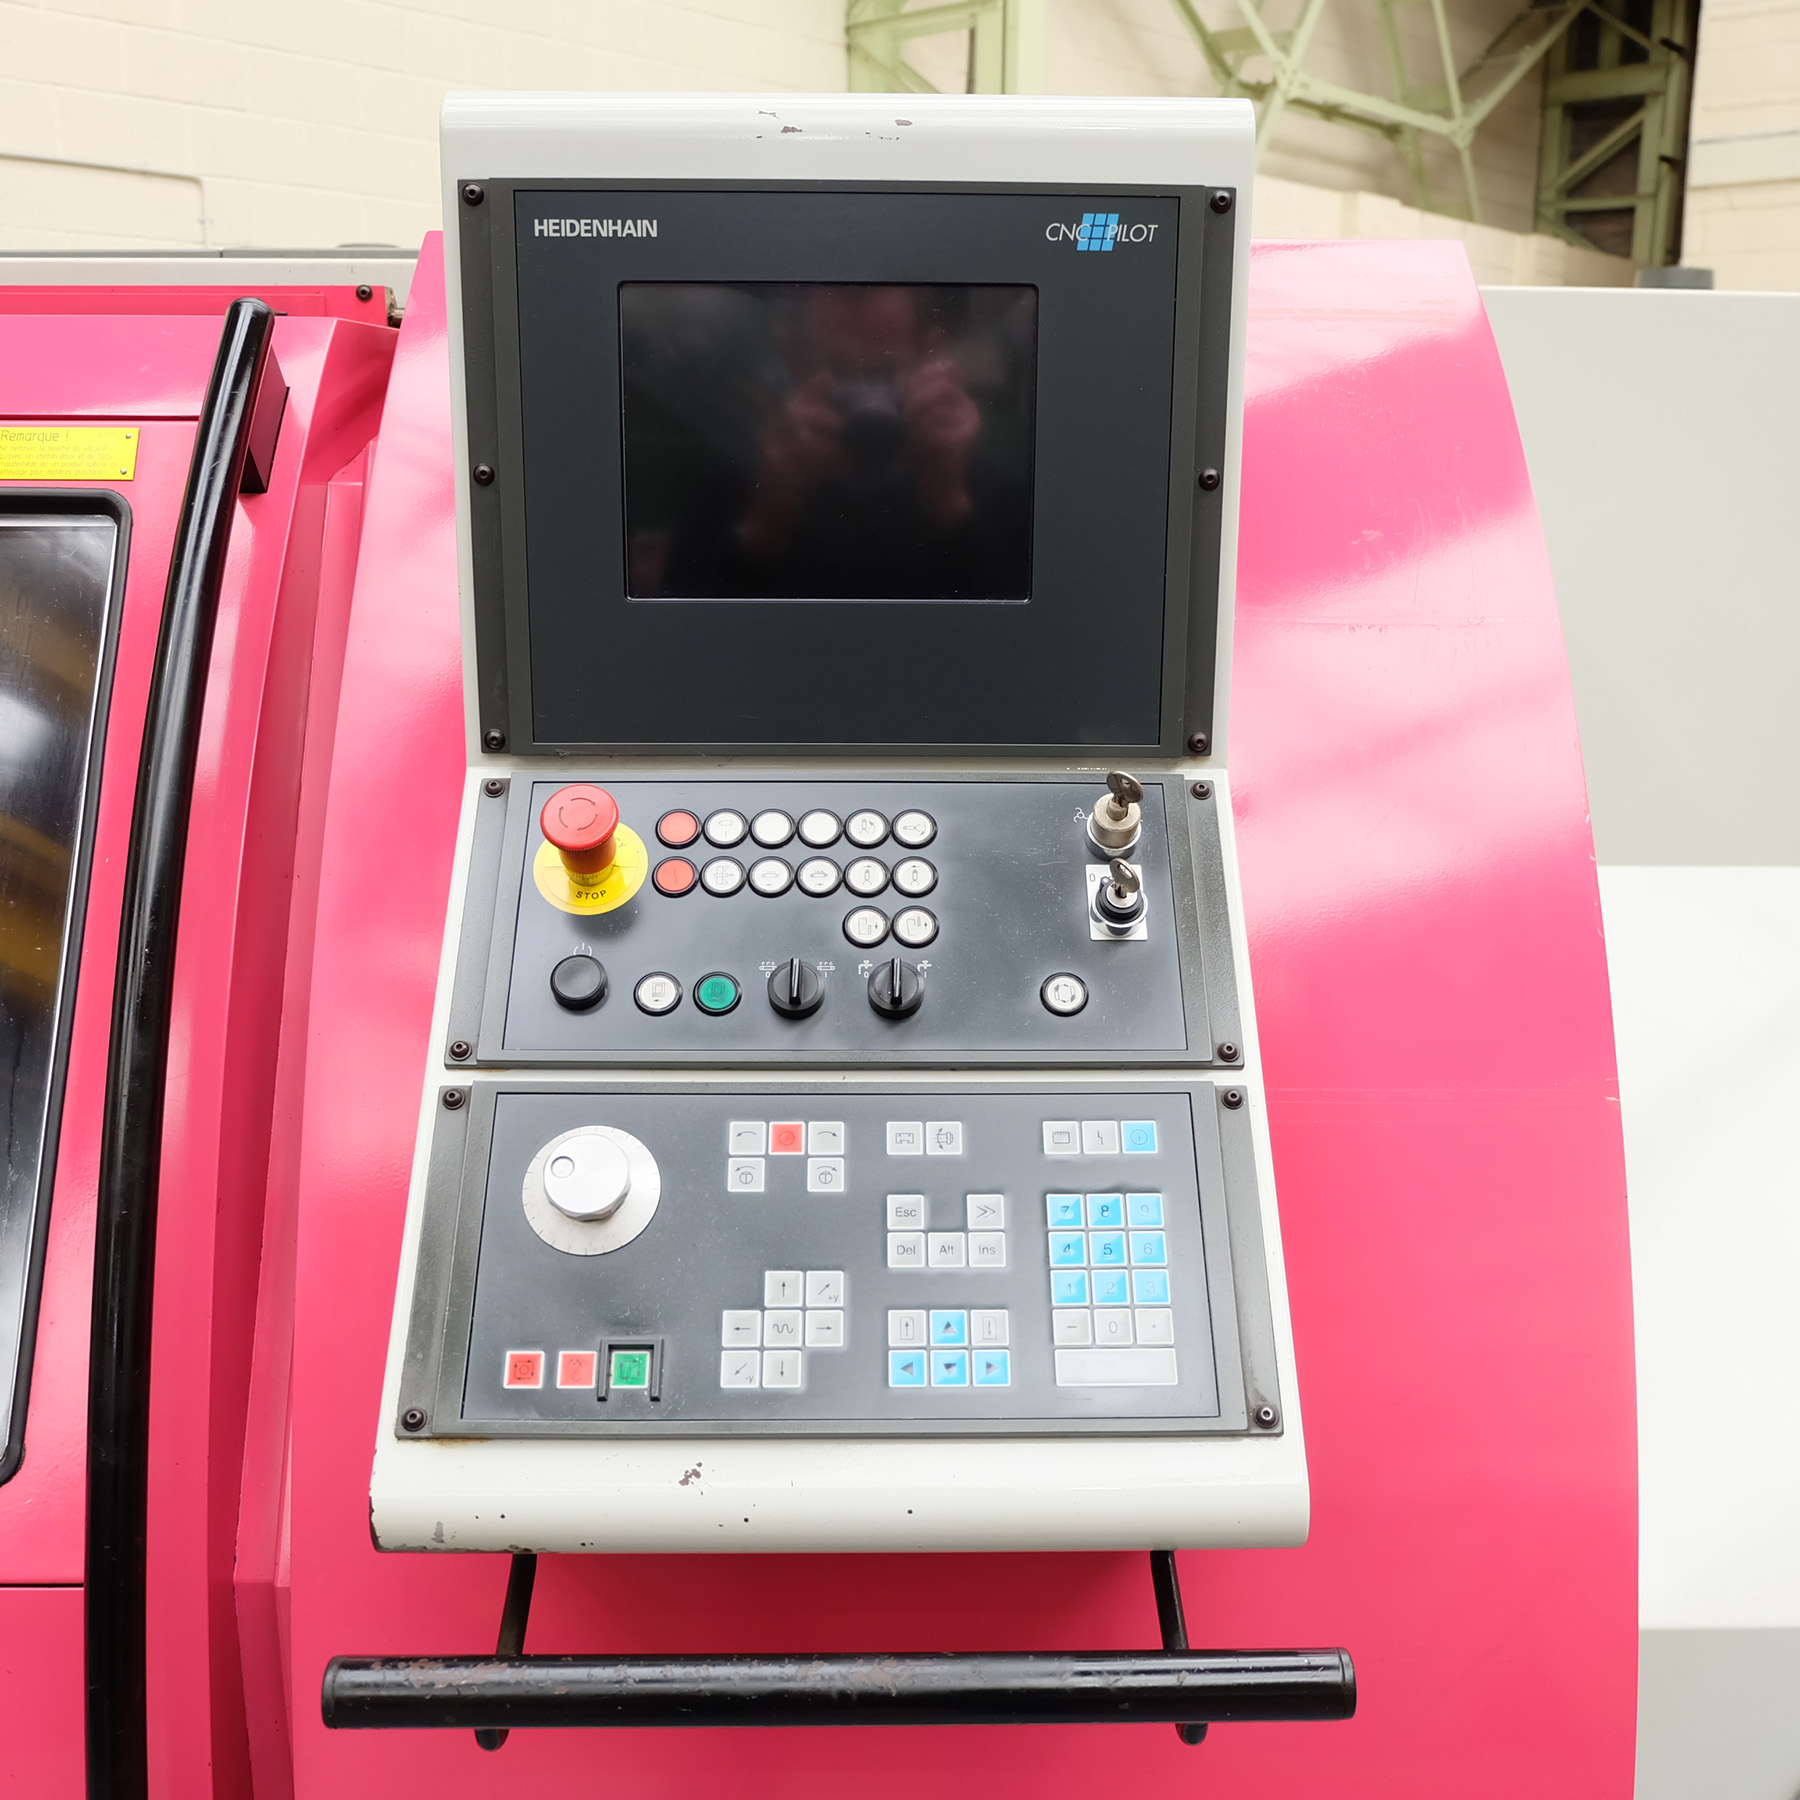 Guildermeister CTX-400 S2. CNC Turning & Milling Centre. With Heidenhain Pilot Control - Image 3 of 17